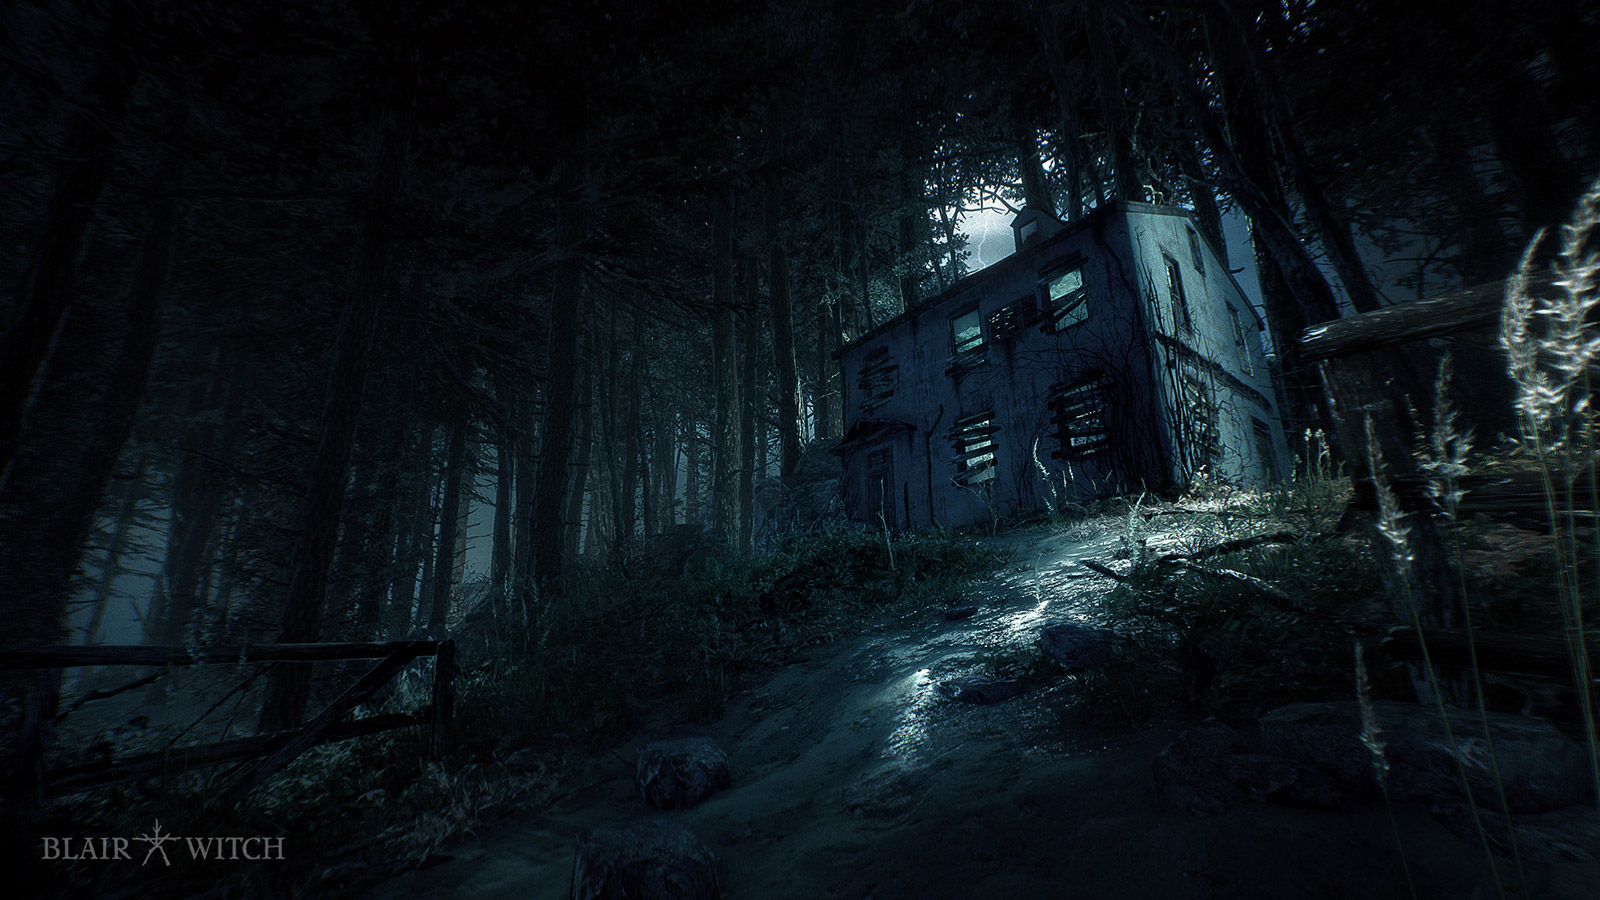 Blair Witch Wallpaper in 1600x900